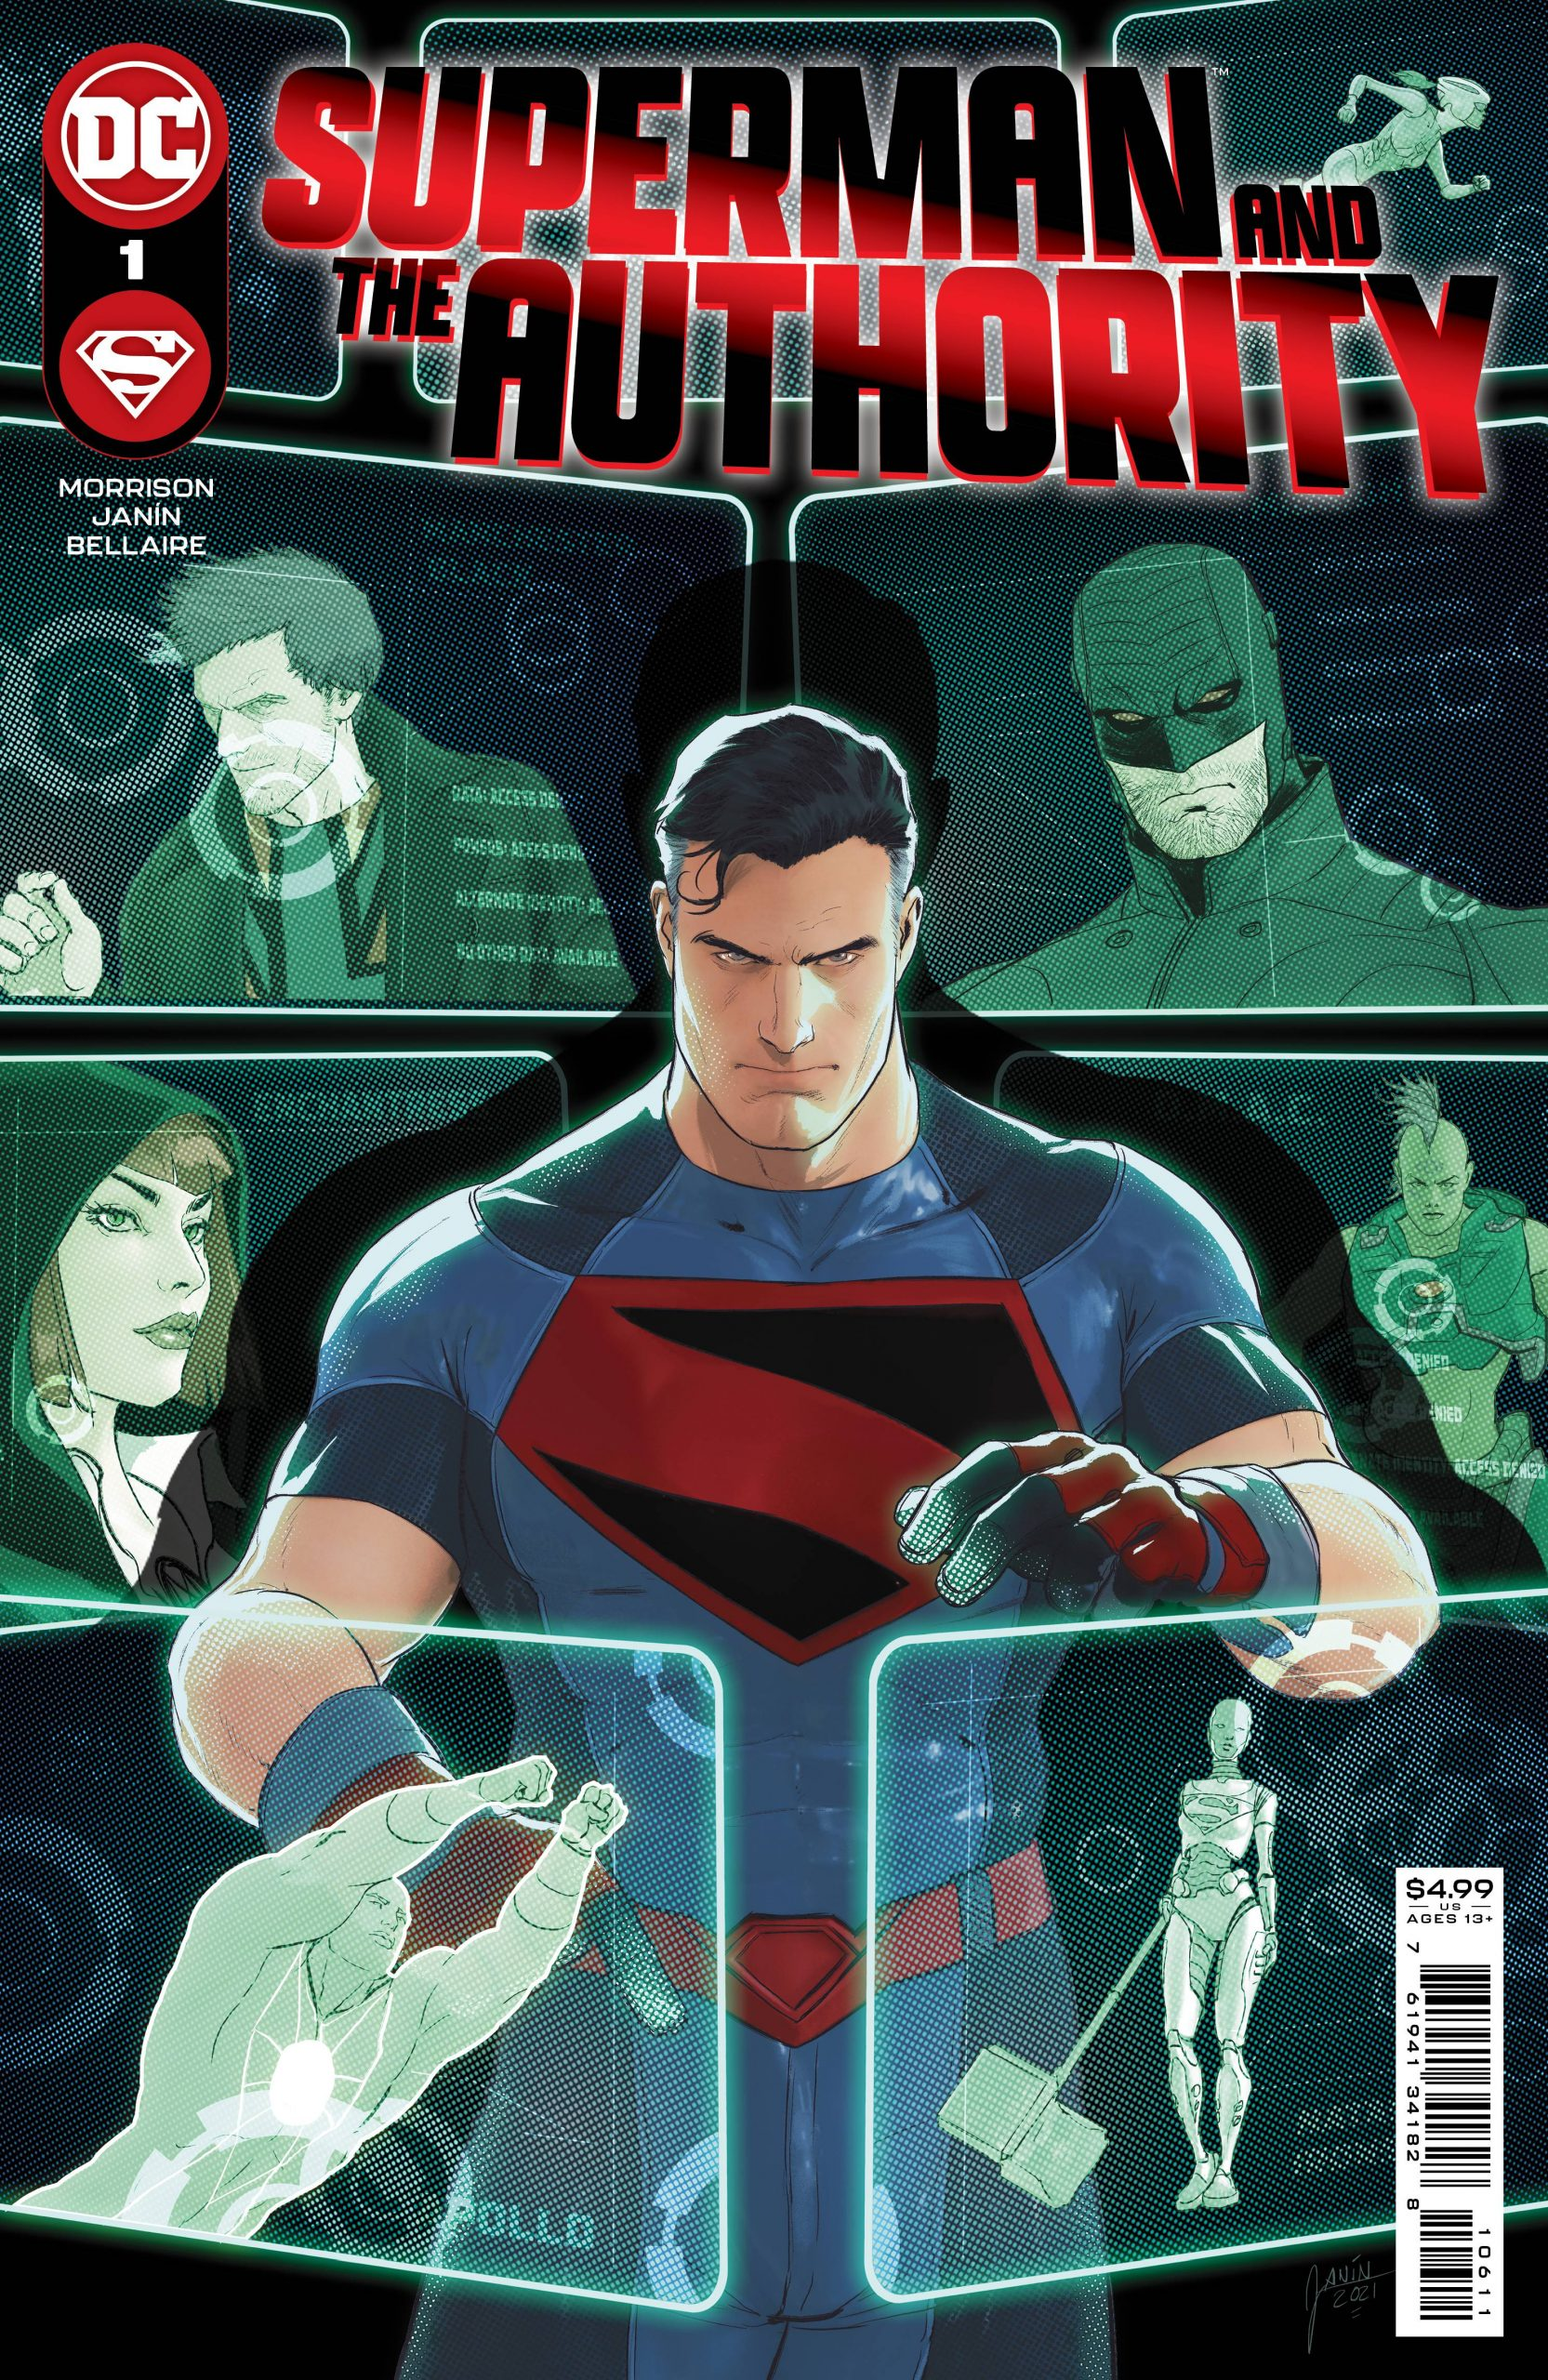 Superman-and-the-Authority-1-spoilers-0-1-scaled-1 Superman-and-the-Authority-1-spoilers-0-1-scaled-1